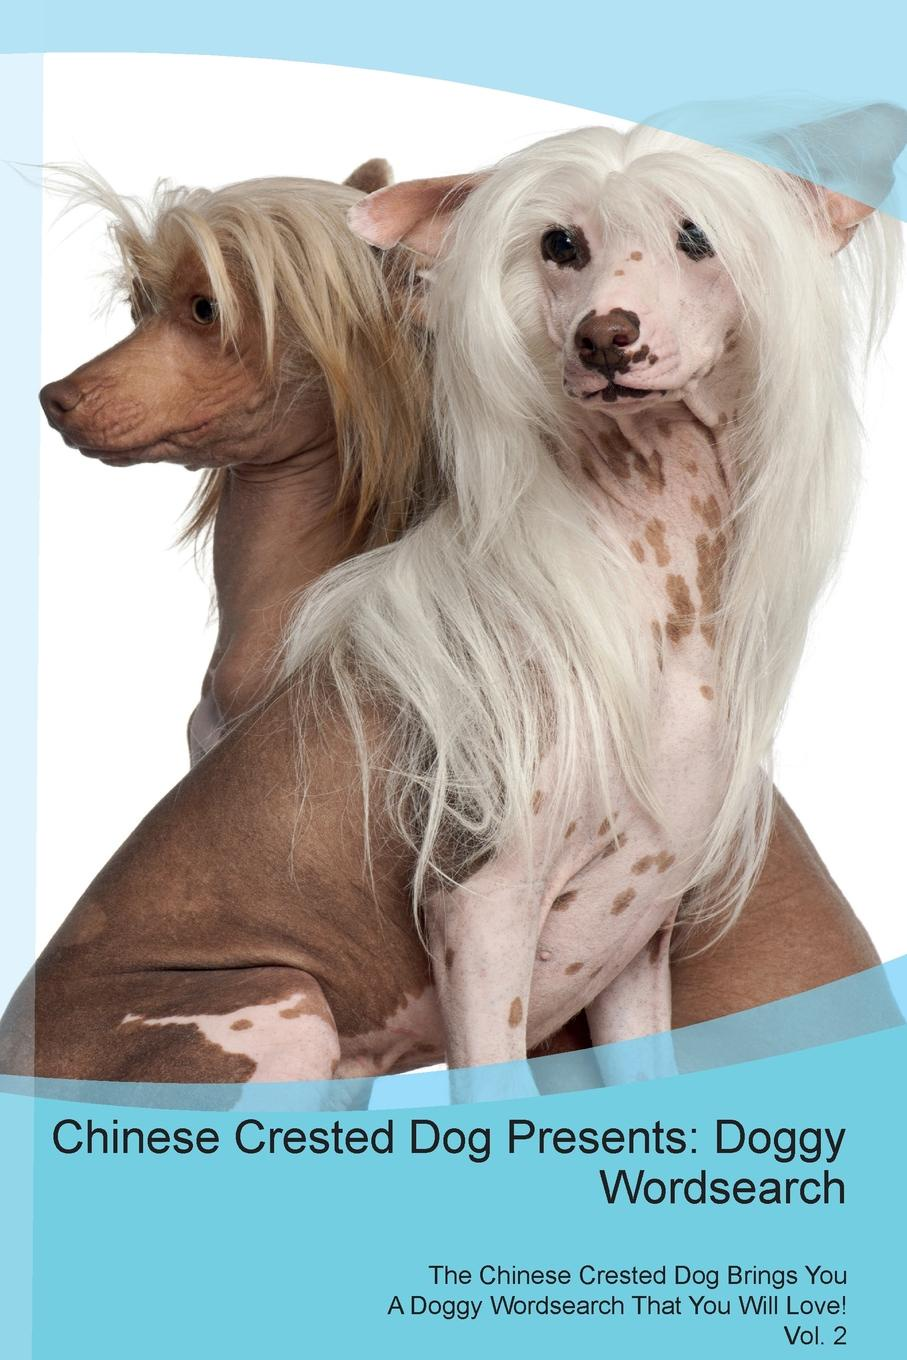 Doggy Puzzles Chinese Crested Dog Presents. Doggy Wordsearch The Chinese Crested Dog Brings You A Doggy Wordsearch That You Will Love! Vol. 2 скальп петуха veniard chinese cock cape